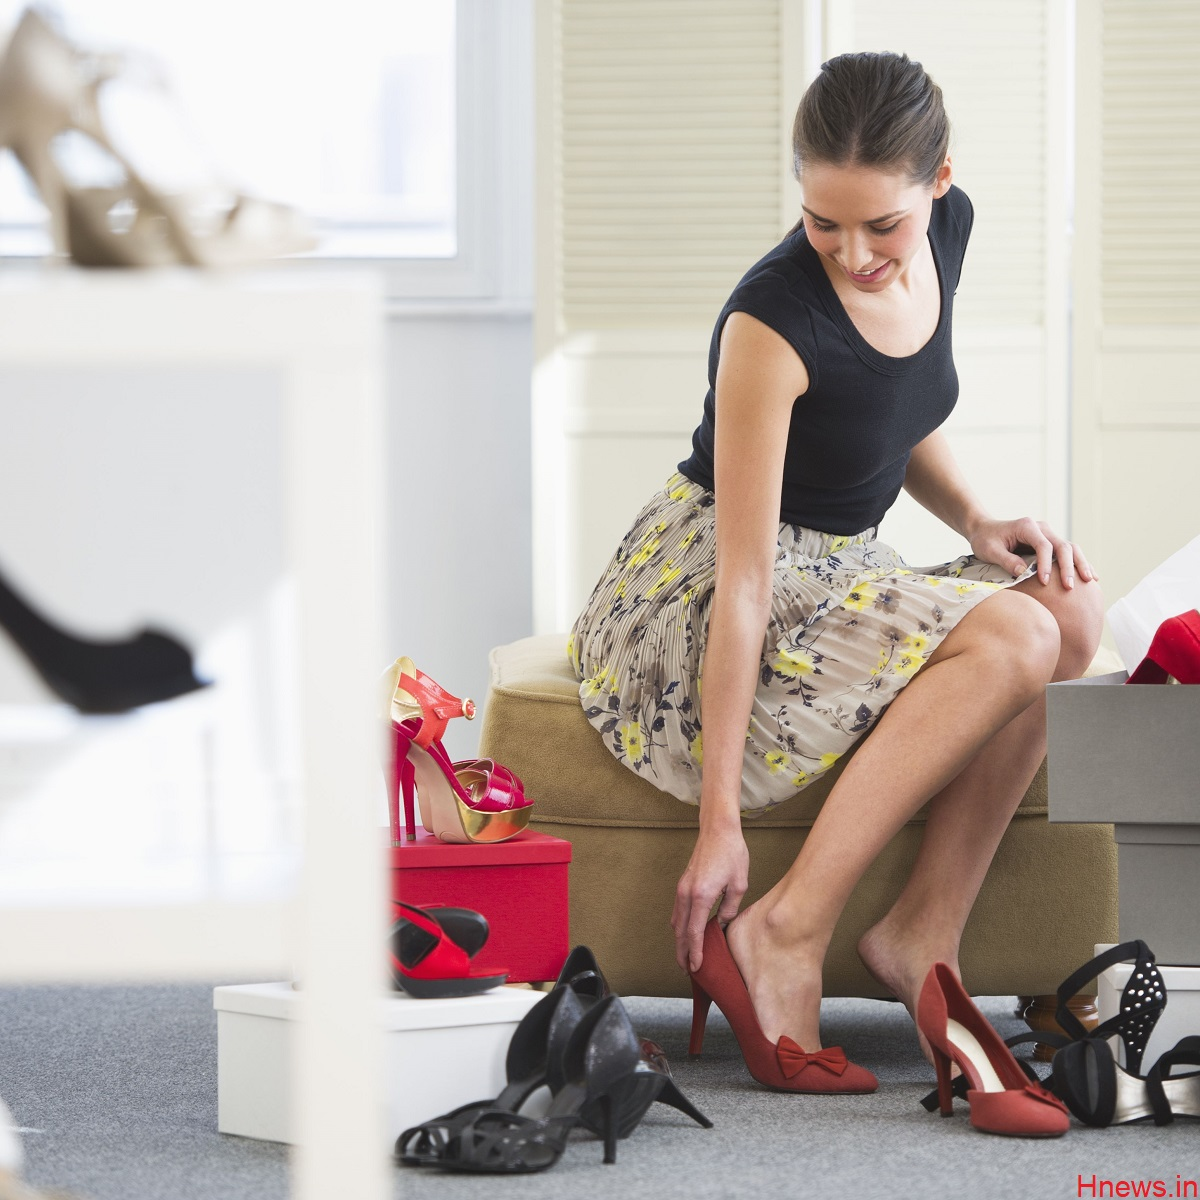 Tips to Make Shoes Comfortable